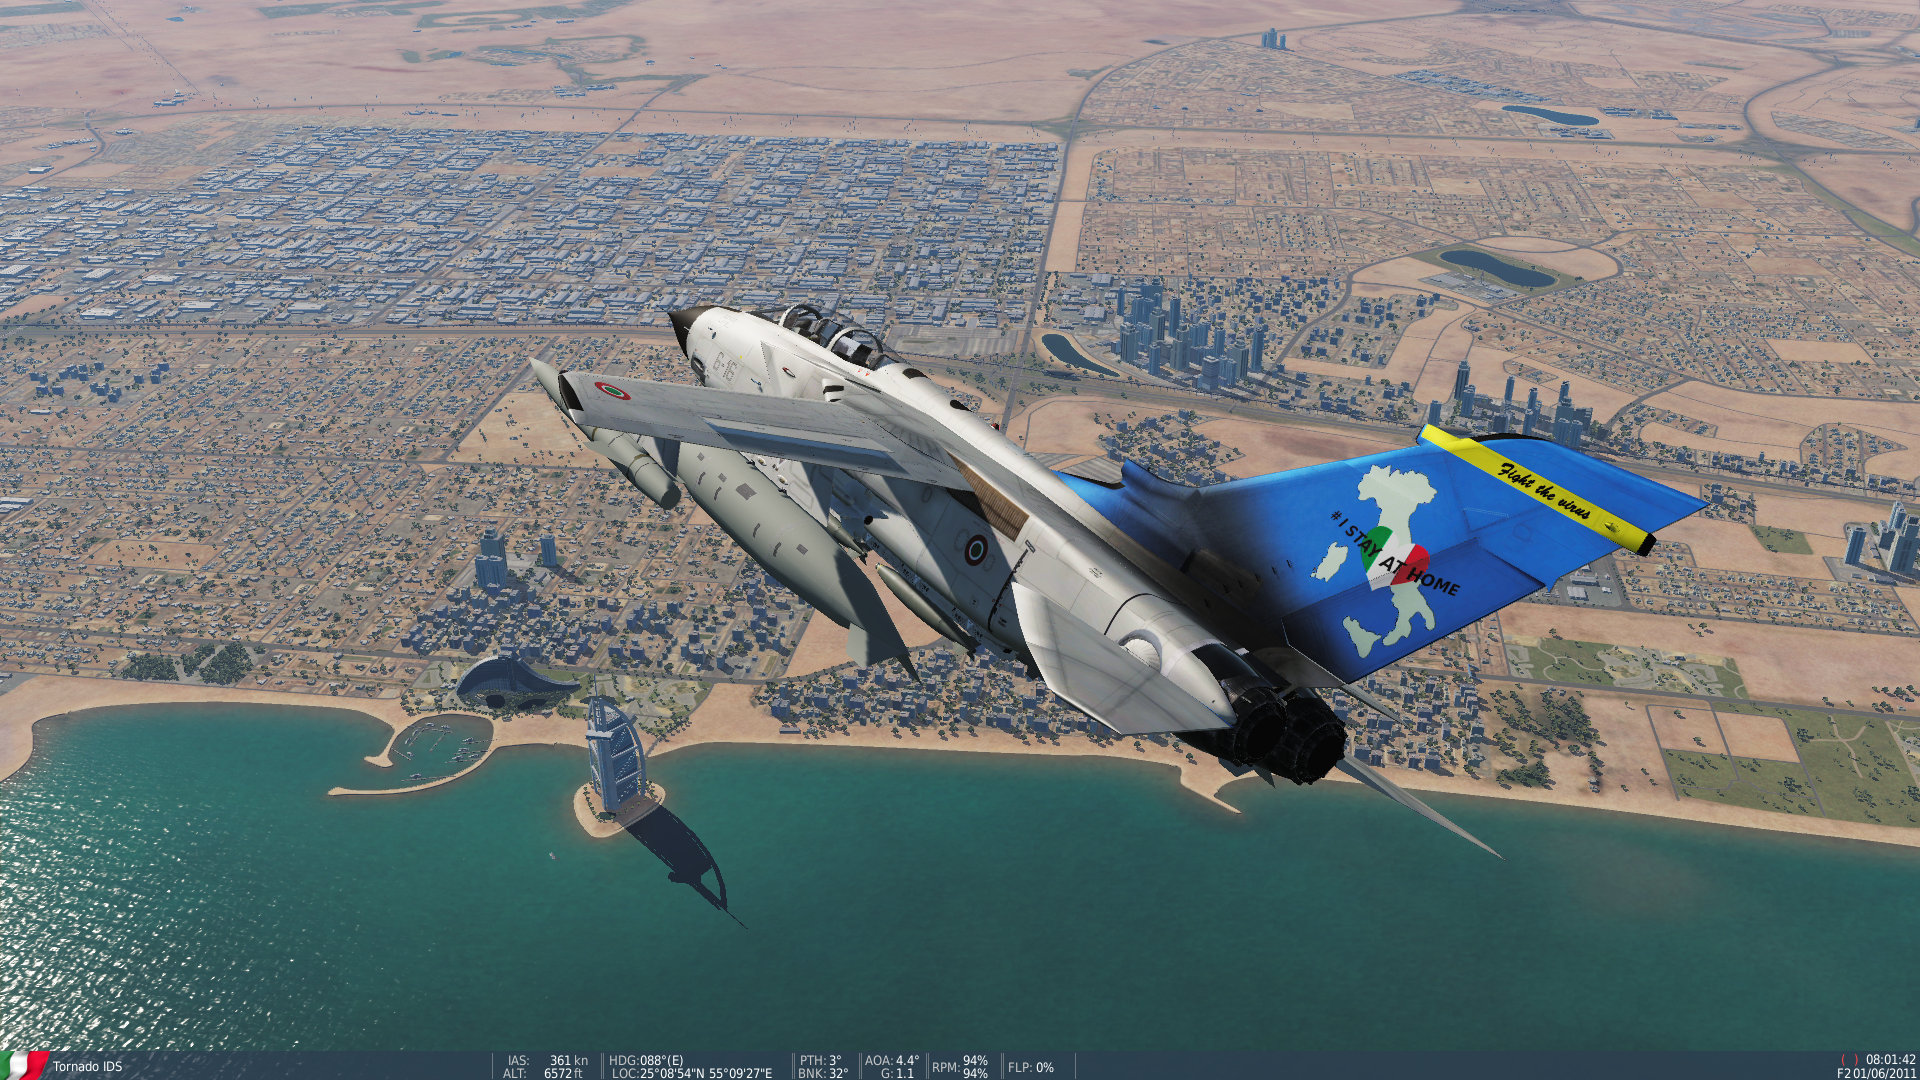 Italian Air Force skin pack for VSN flyable series (#ISTAYATHOME)